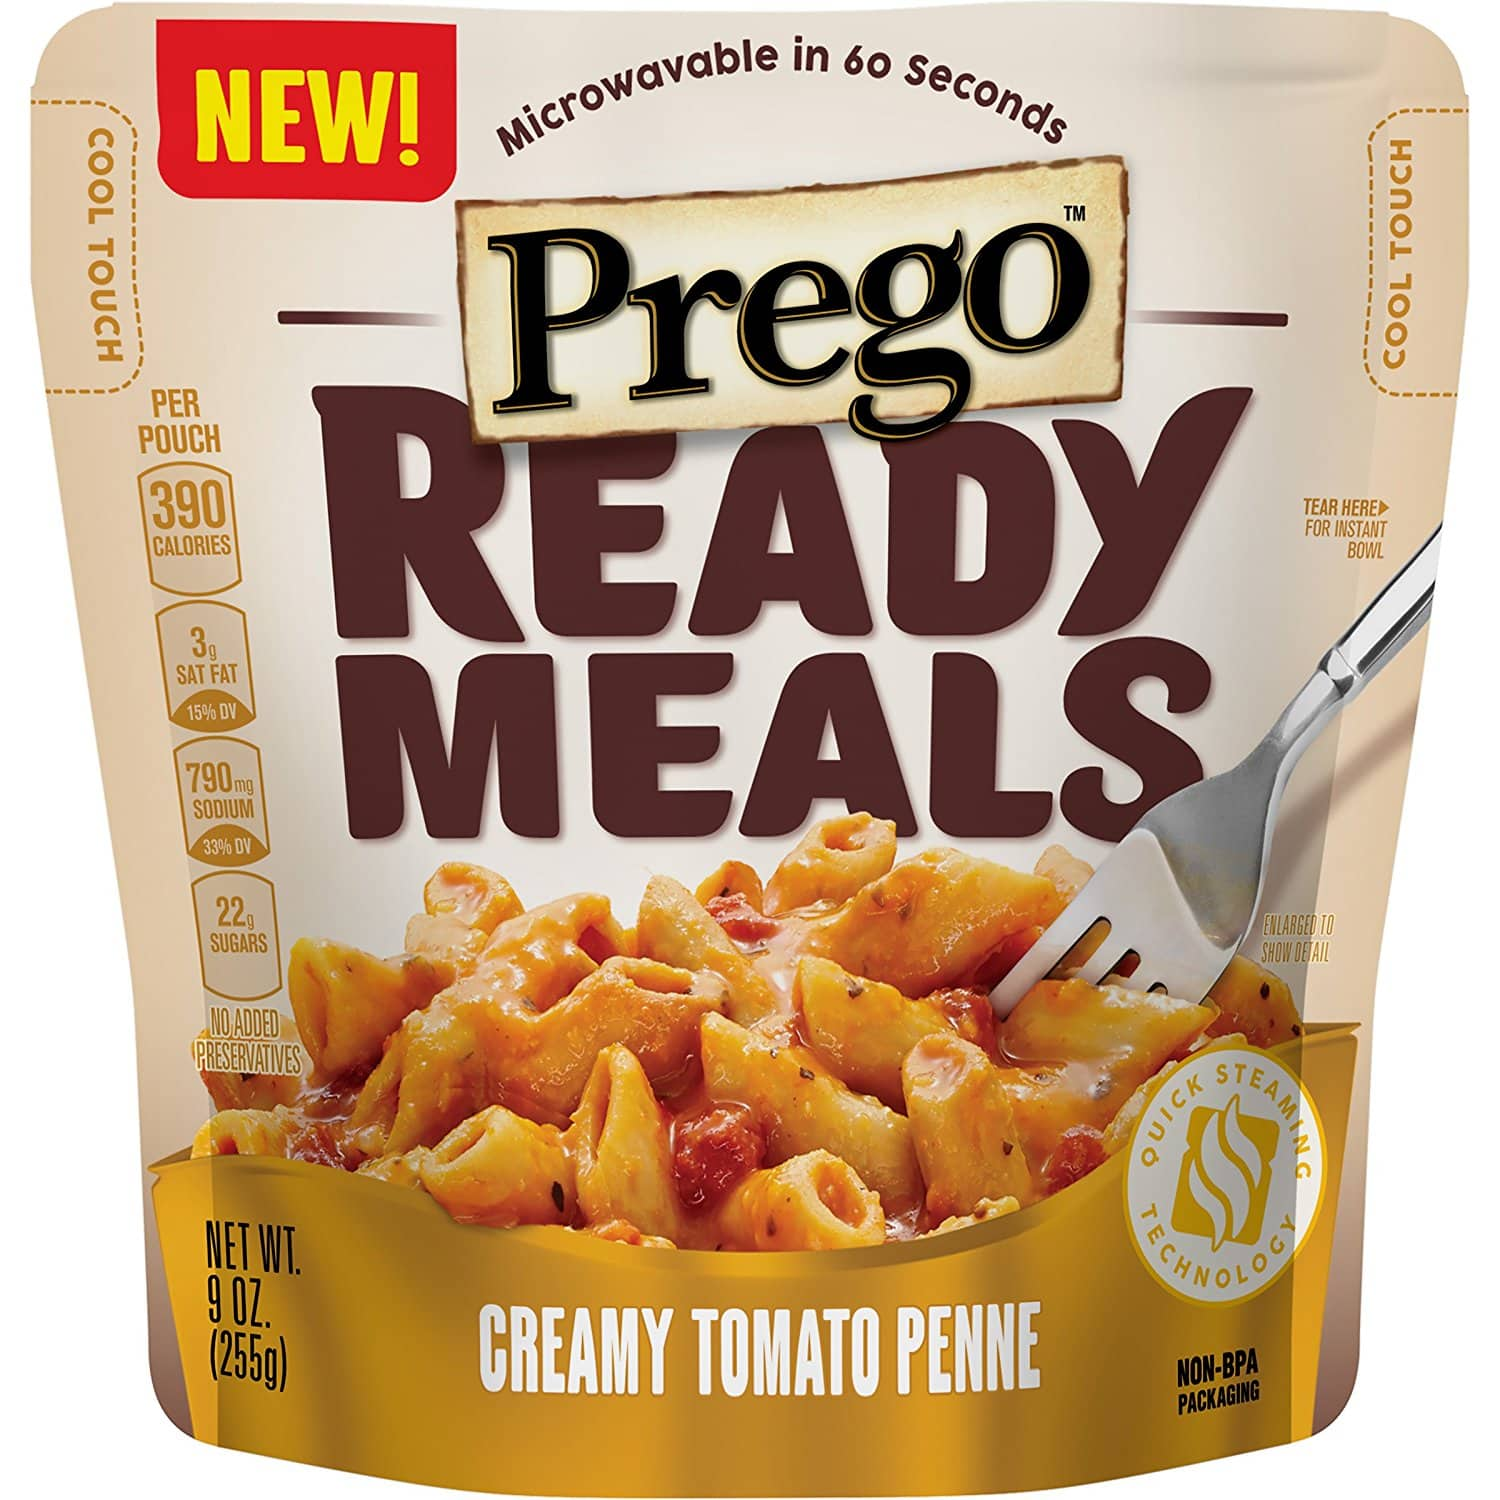 Amazon.com - 6-Pack Prego Ready Meals (9 Ounce) (Multiple Varieties) - As low as $5.32 with Free Shipping w/S&S